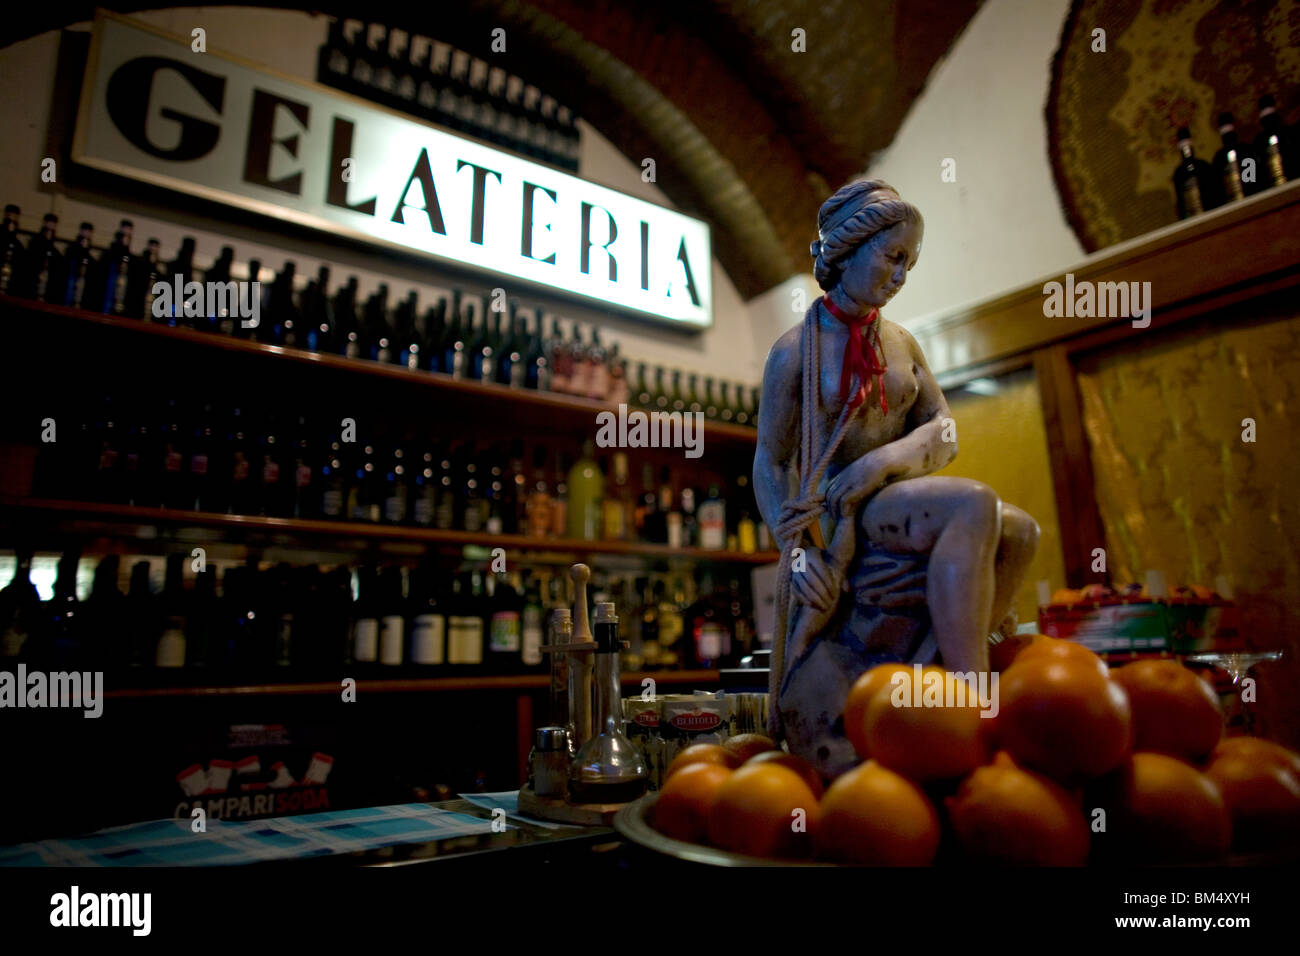 A Gelateria, or ice cream shop, in Rome's touristic Trastever neighborhood, March 9, 2008. Photo/Chico Sanchez Stock Photo